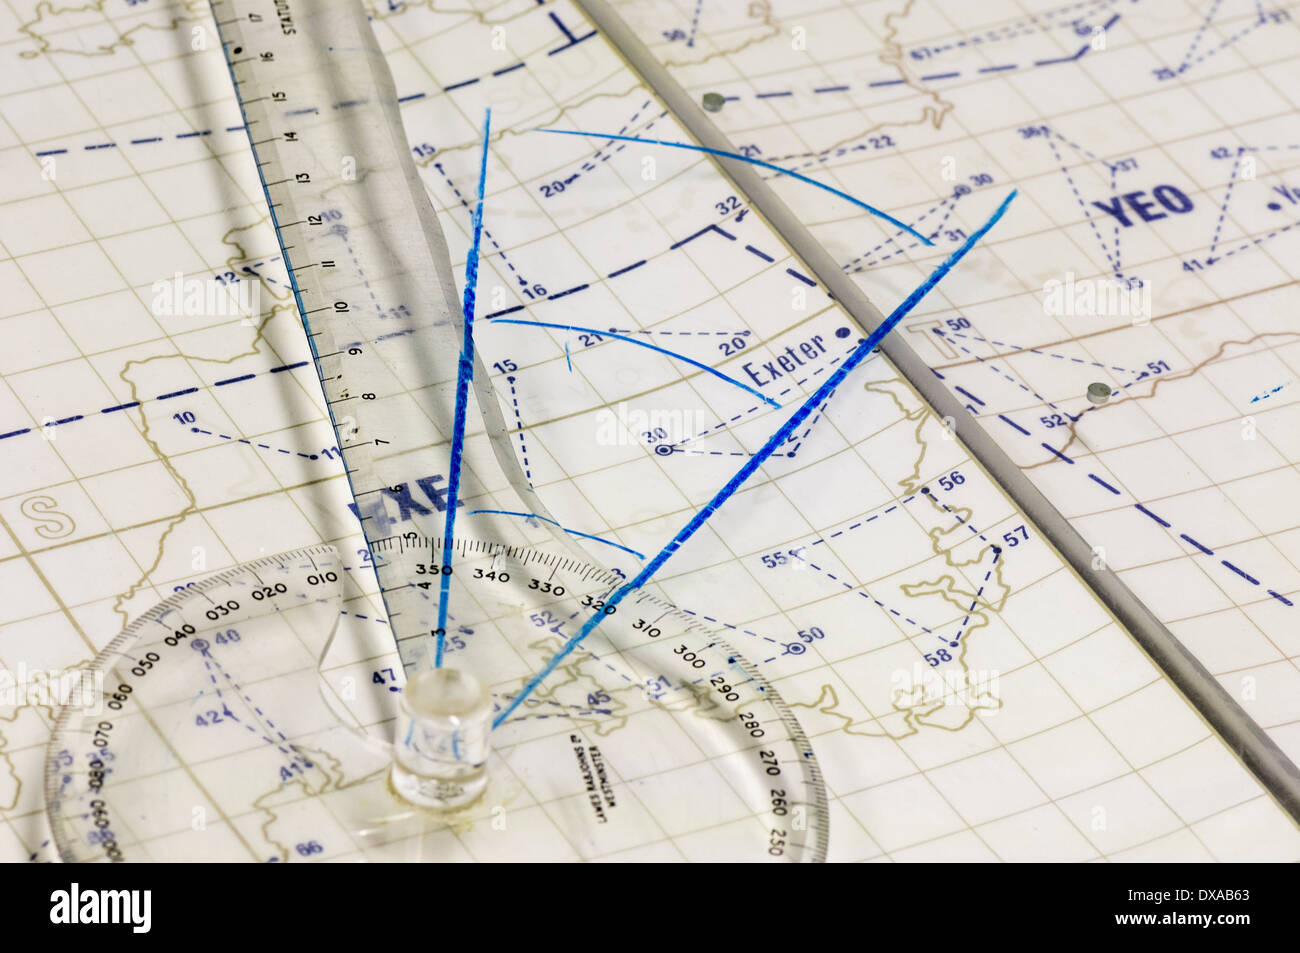 Navigation mapping ruler on a map of Cornwall in South West England - Stock Image